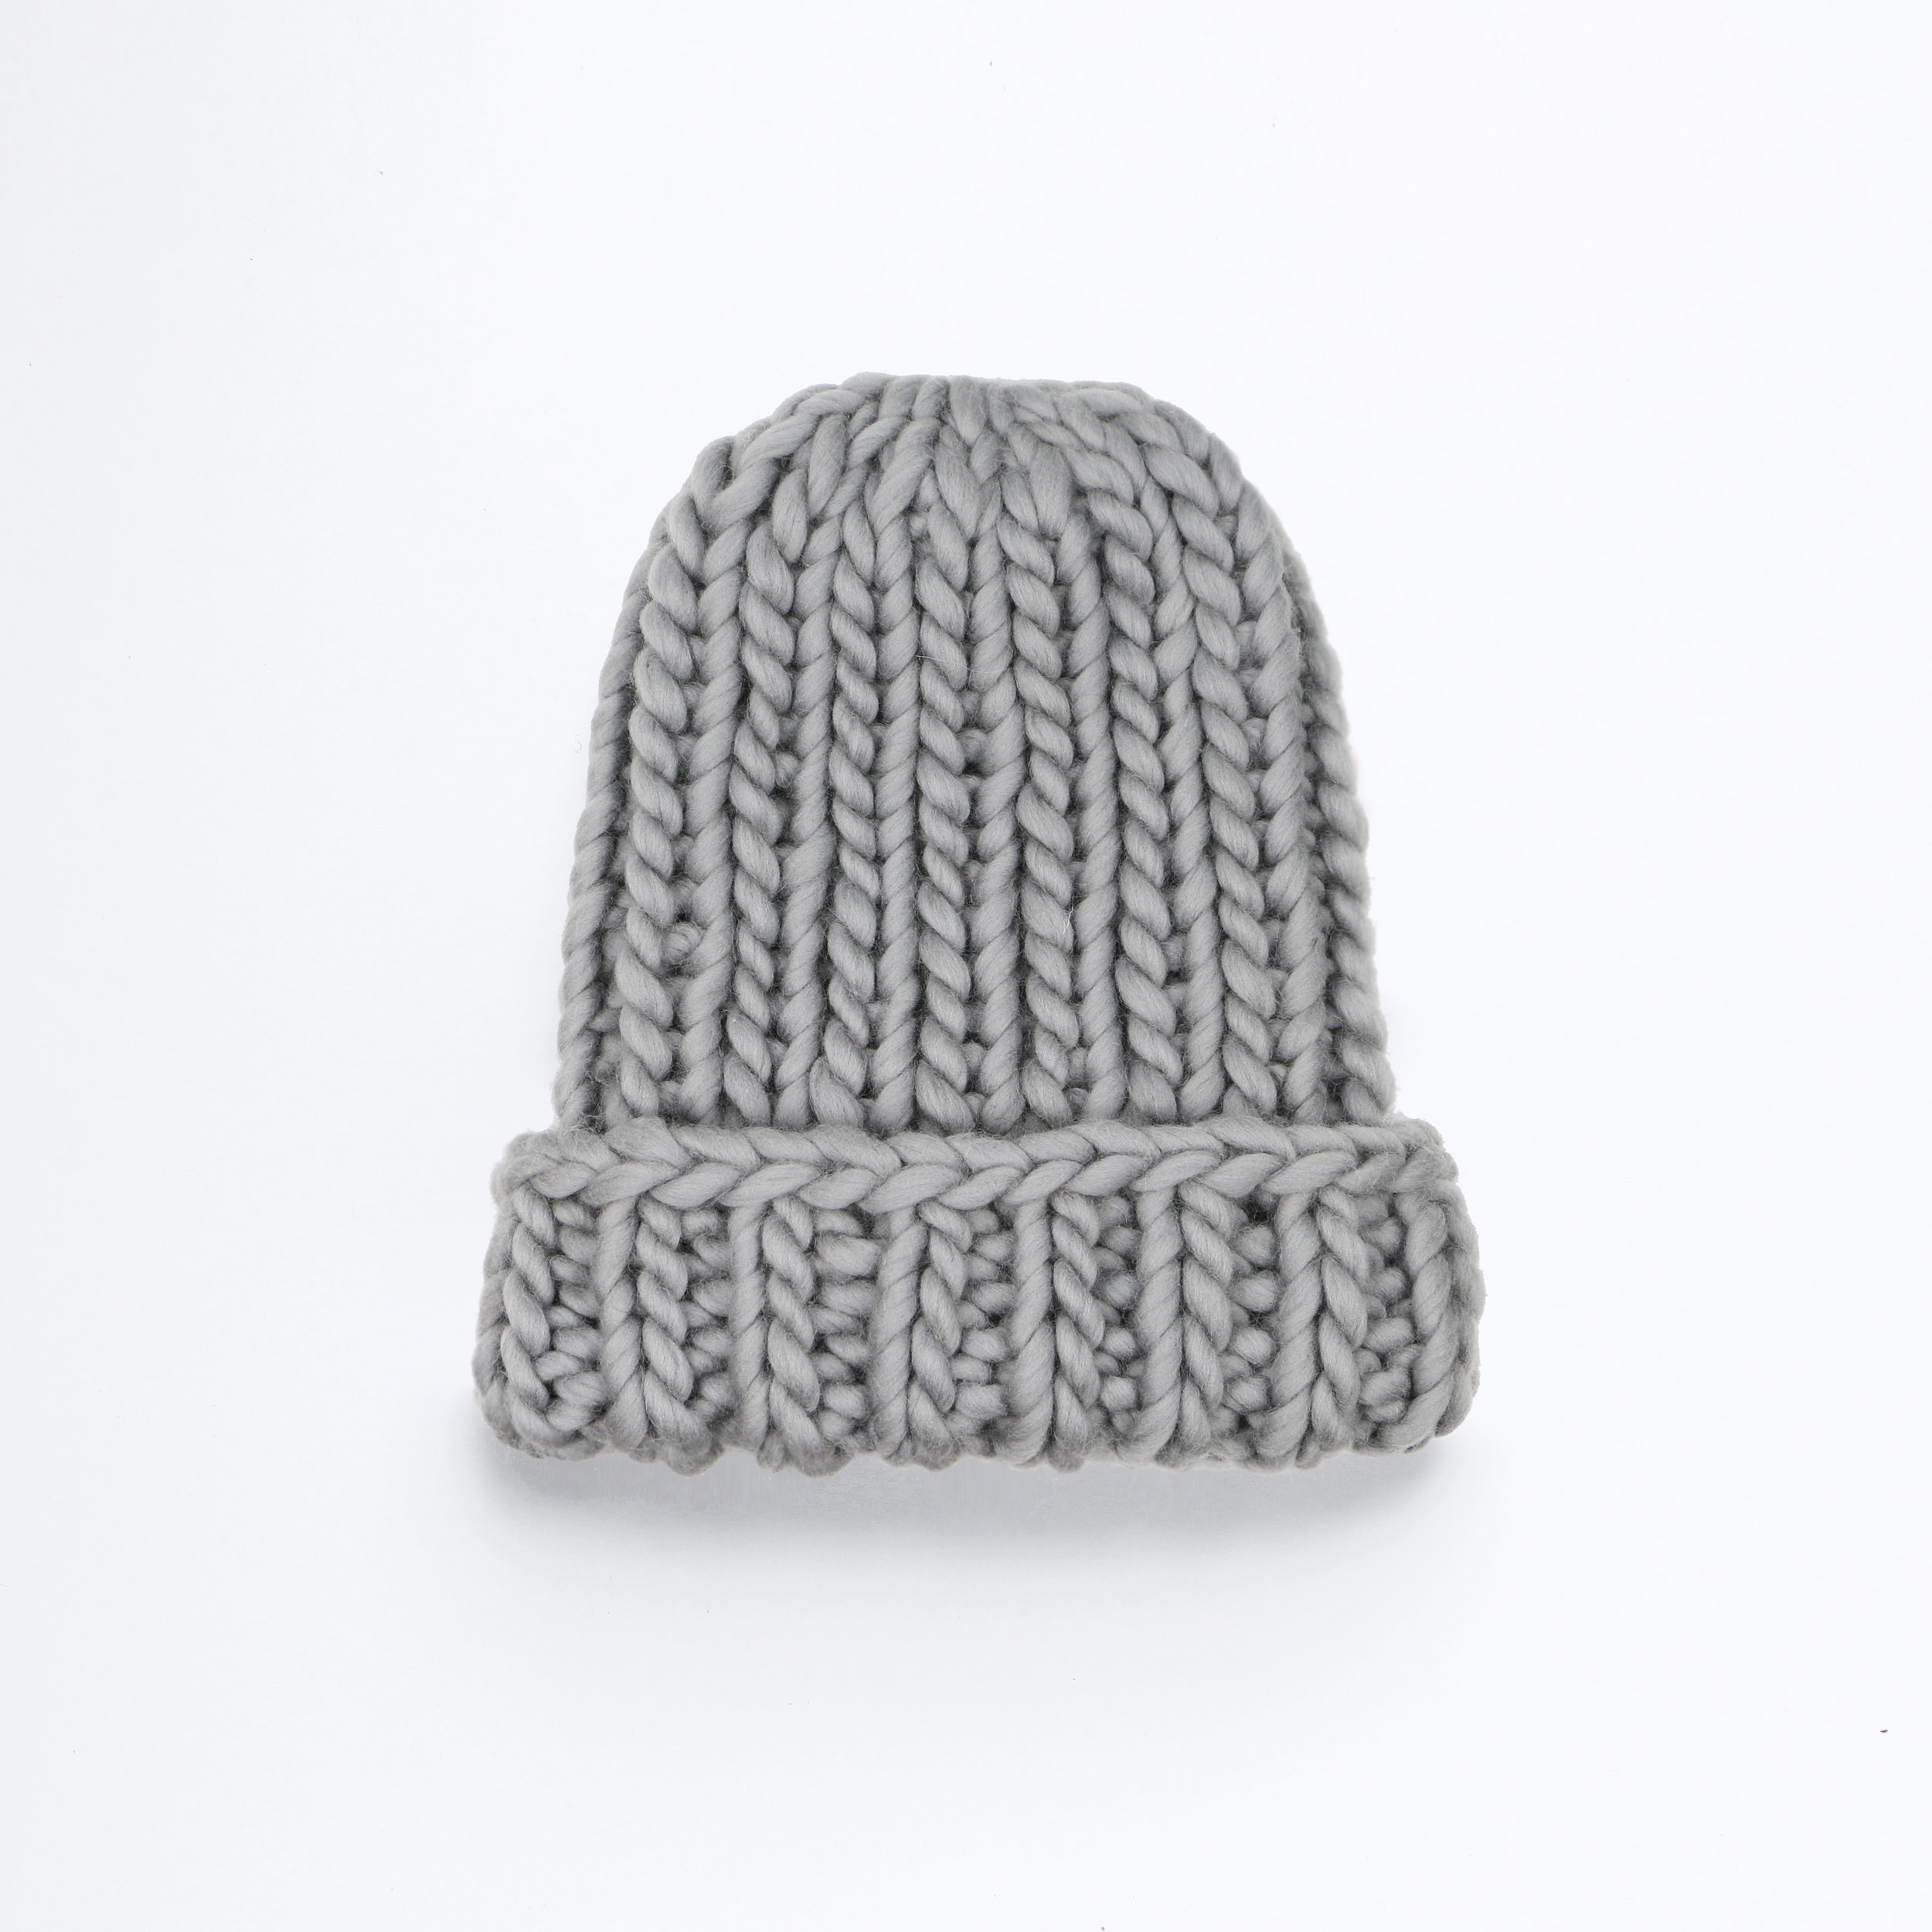 GO BIG OR GO HOME BEANIE - Granite